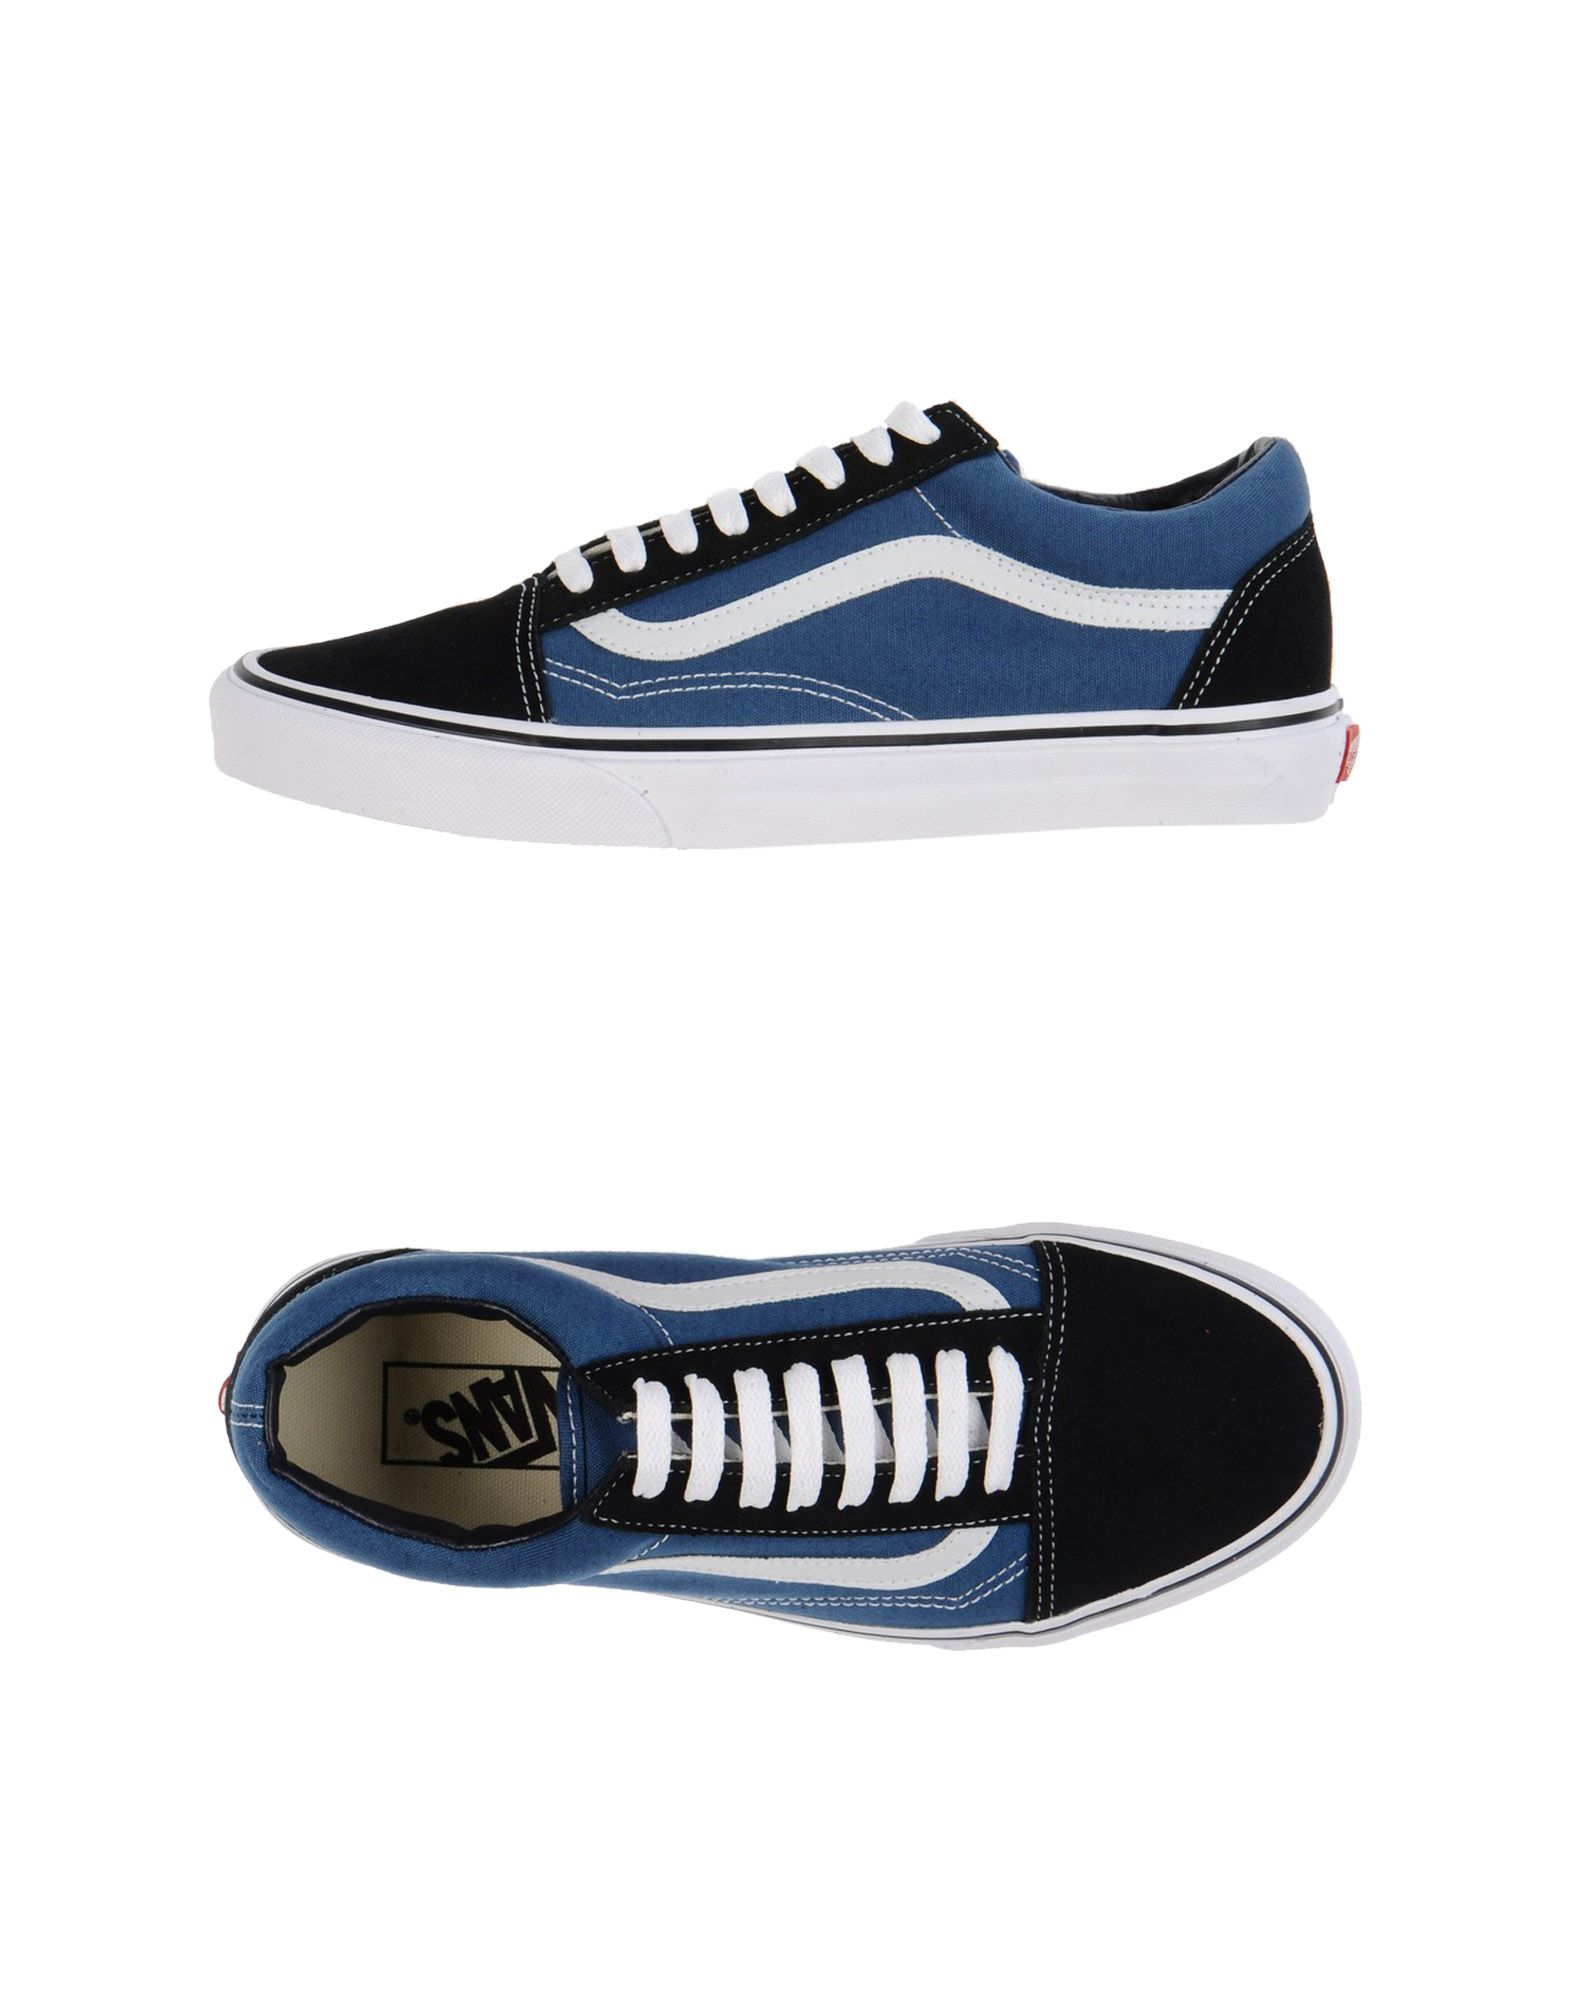 lyst vans low tops trainers in gray for men. Black Bedroom Furniture Sets. Home Design Ideas